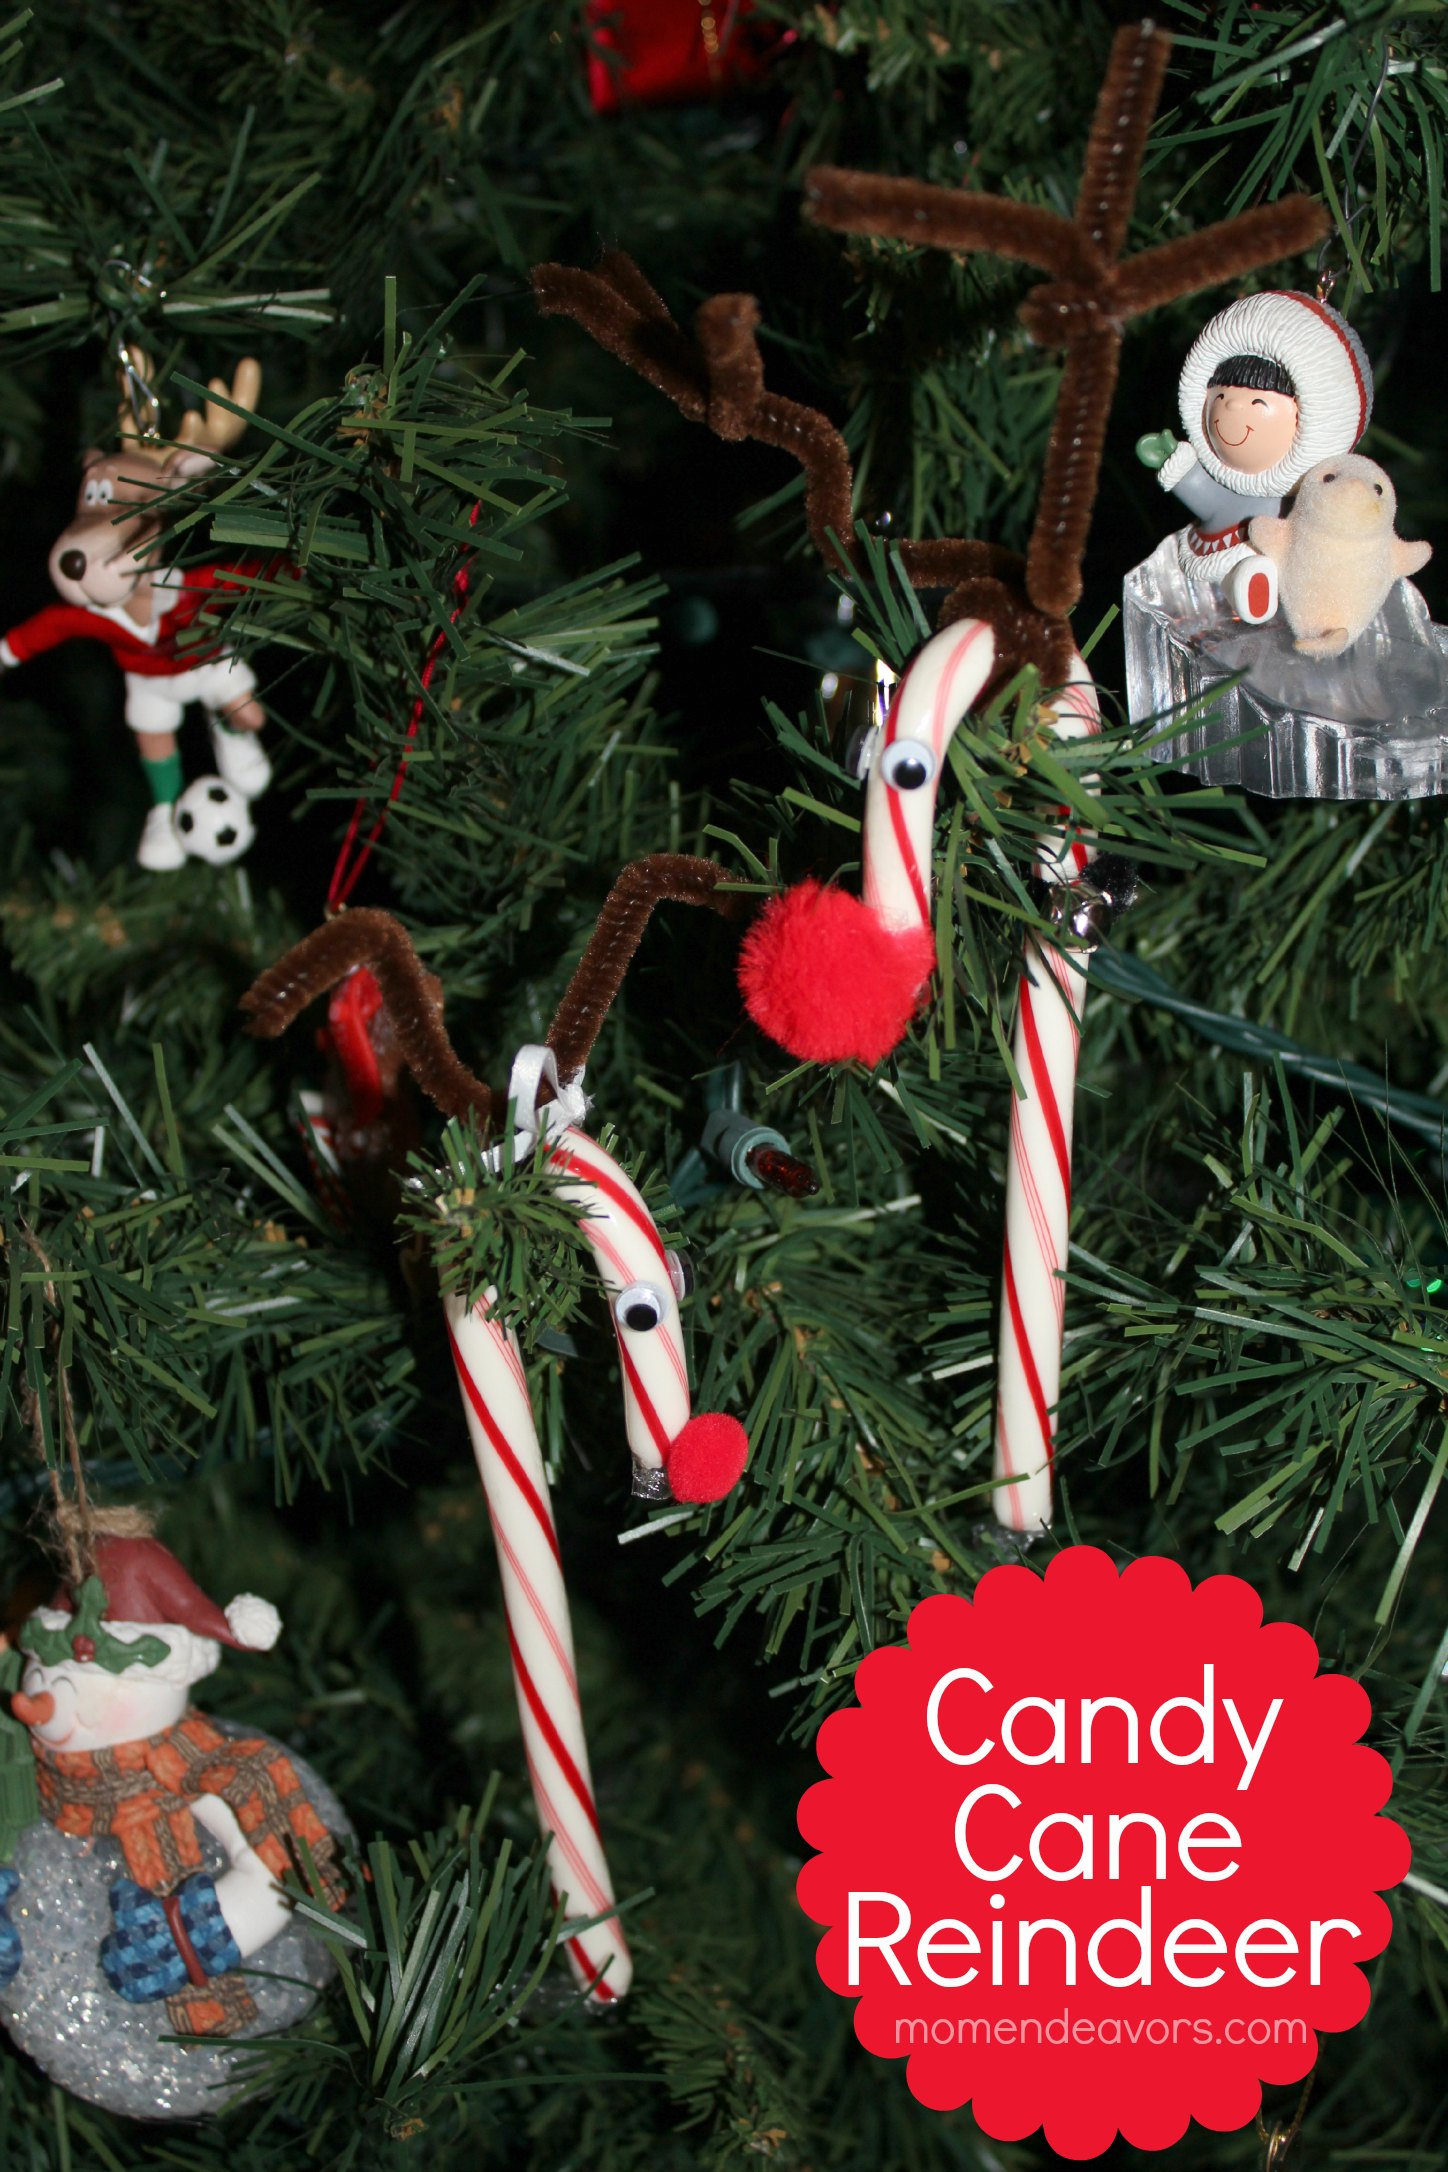 Candy Cane Reindeer Easy Kids Craft Ornament